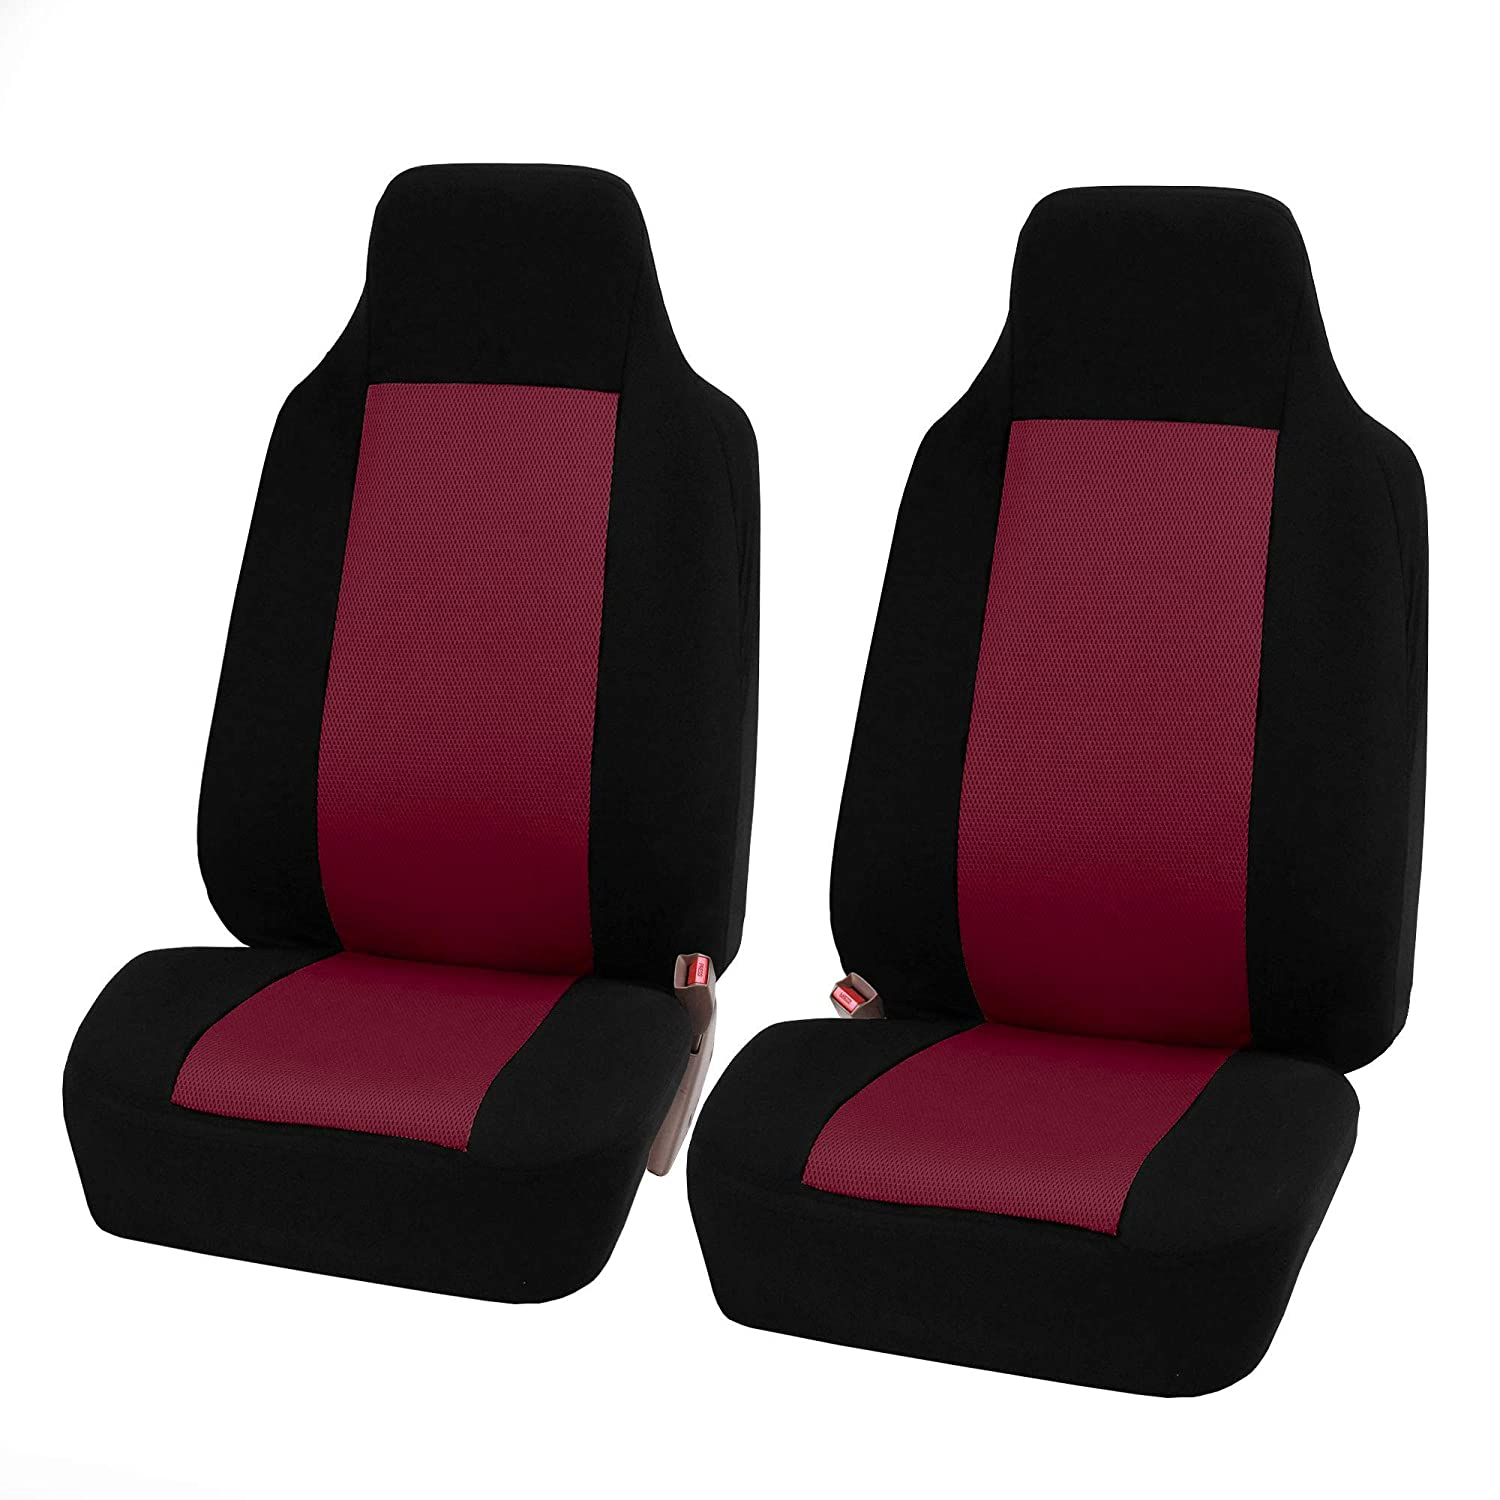 FH Group FB102BURGUNDY102-AVC FB102BURGUNDY102 Classic Cloth Pair Set Seat Covers Burgundy/Black-Fit Most Car, Truck, SUV, or Van